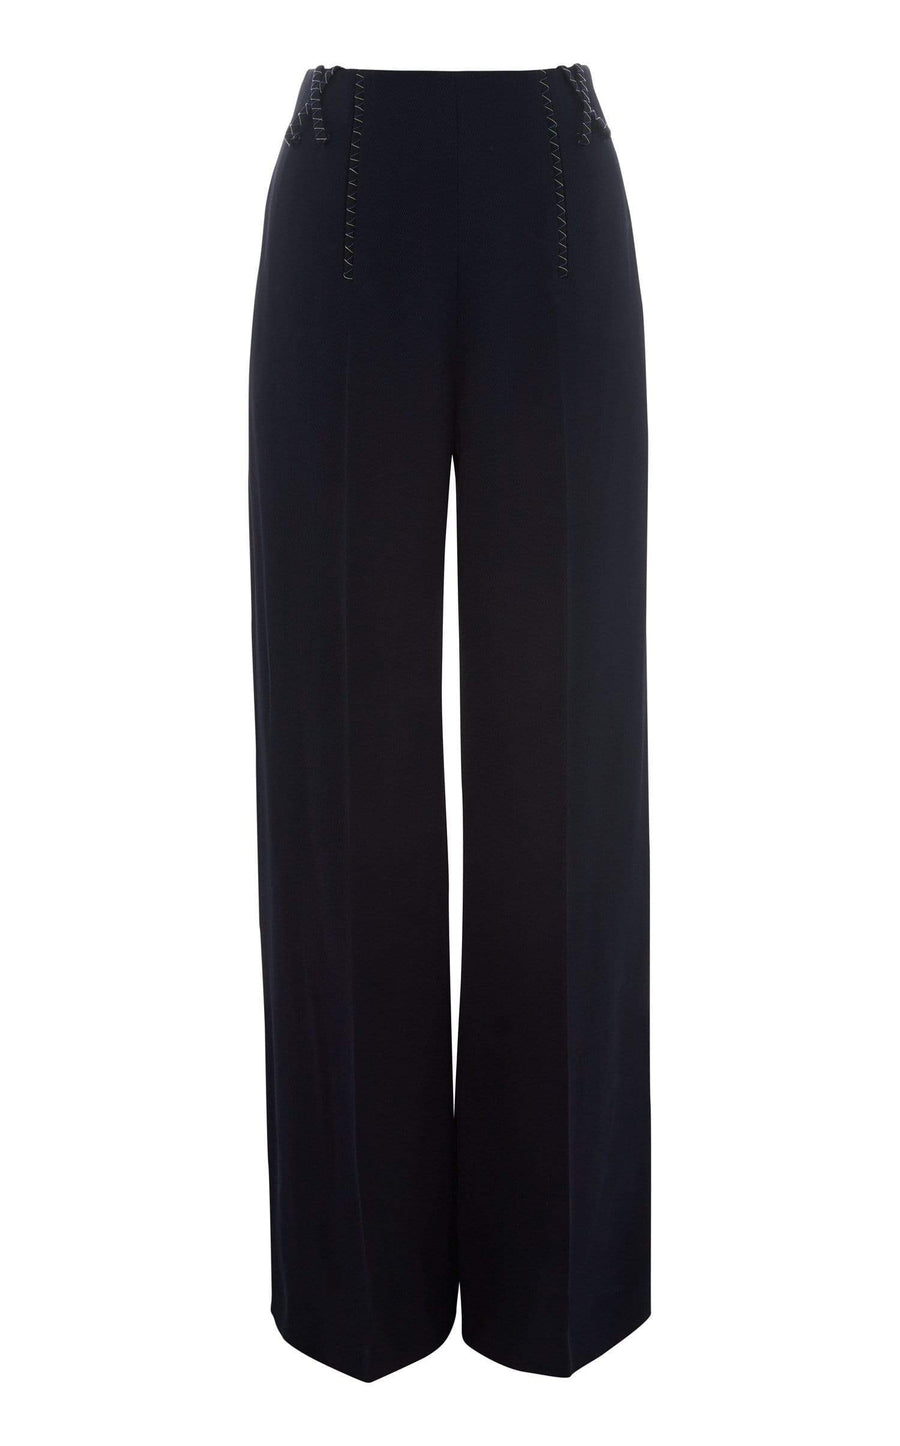 Chapelle Trouser In Navy from Roland Mouret